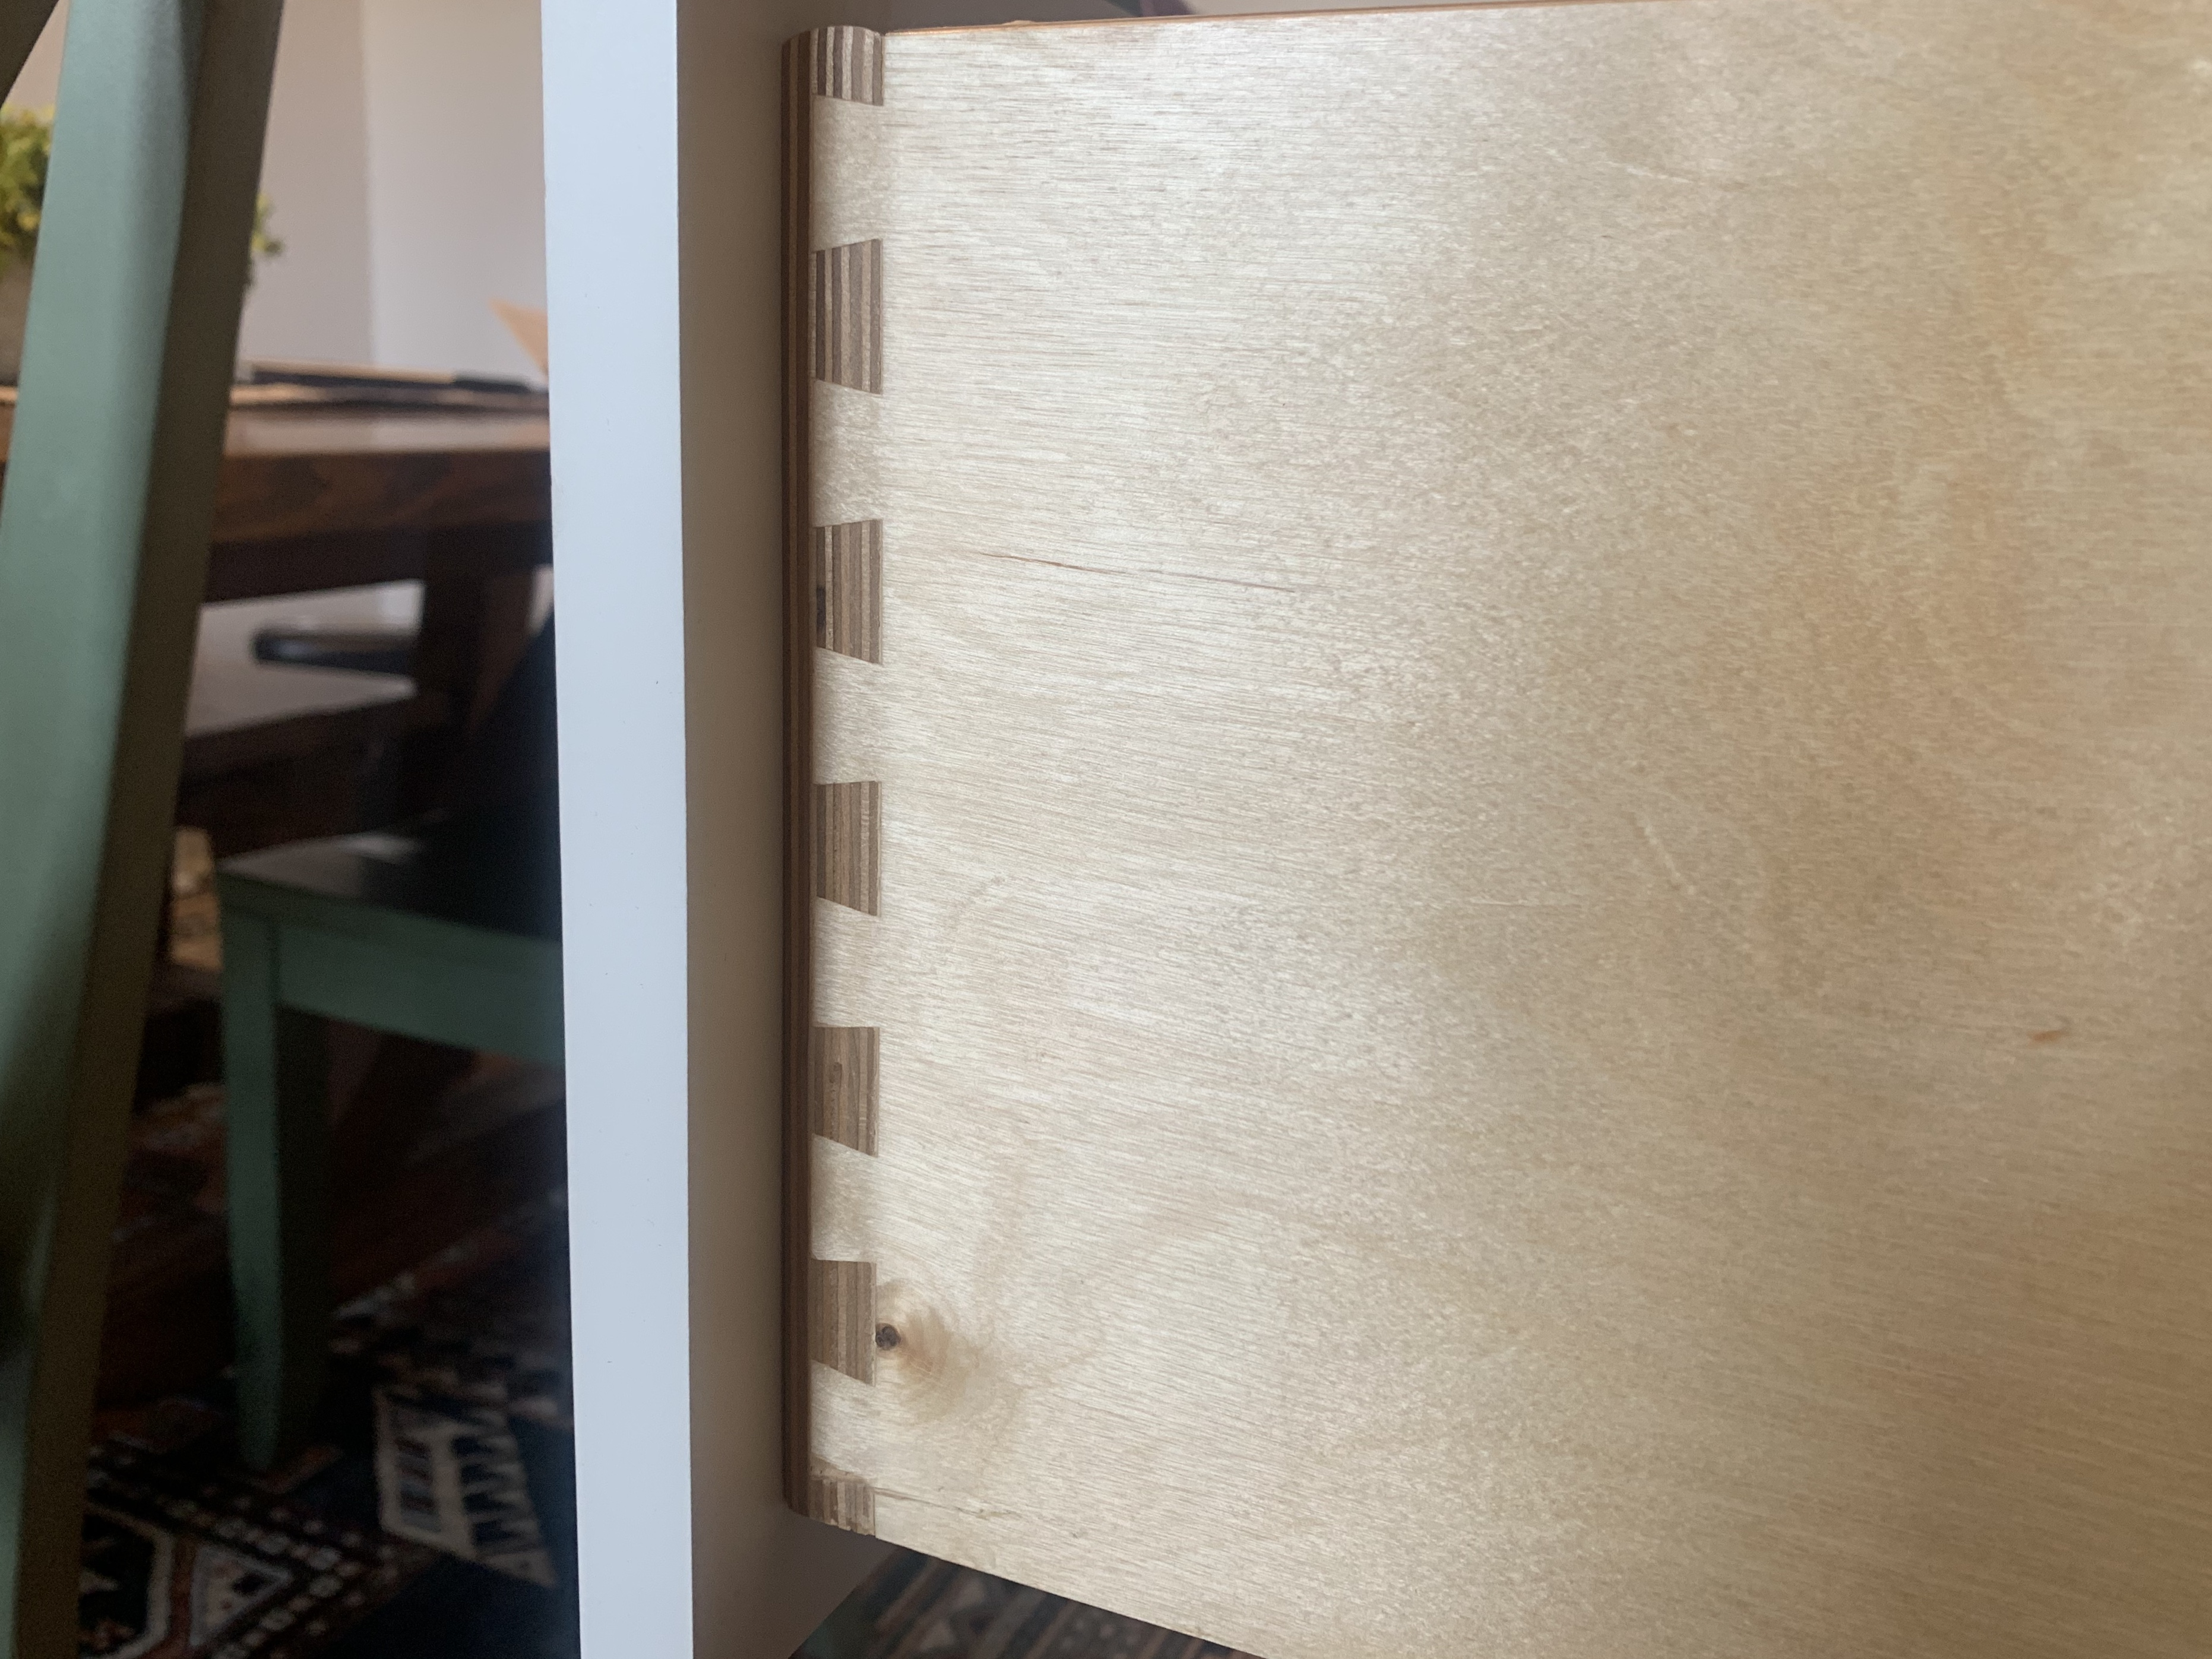 Dovetail joints in a cabinet construction